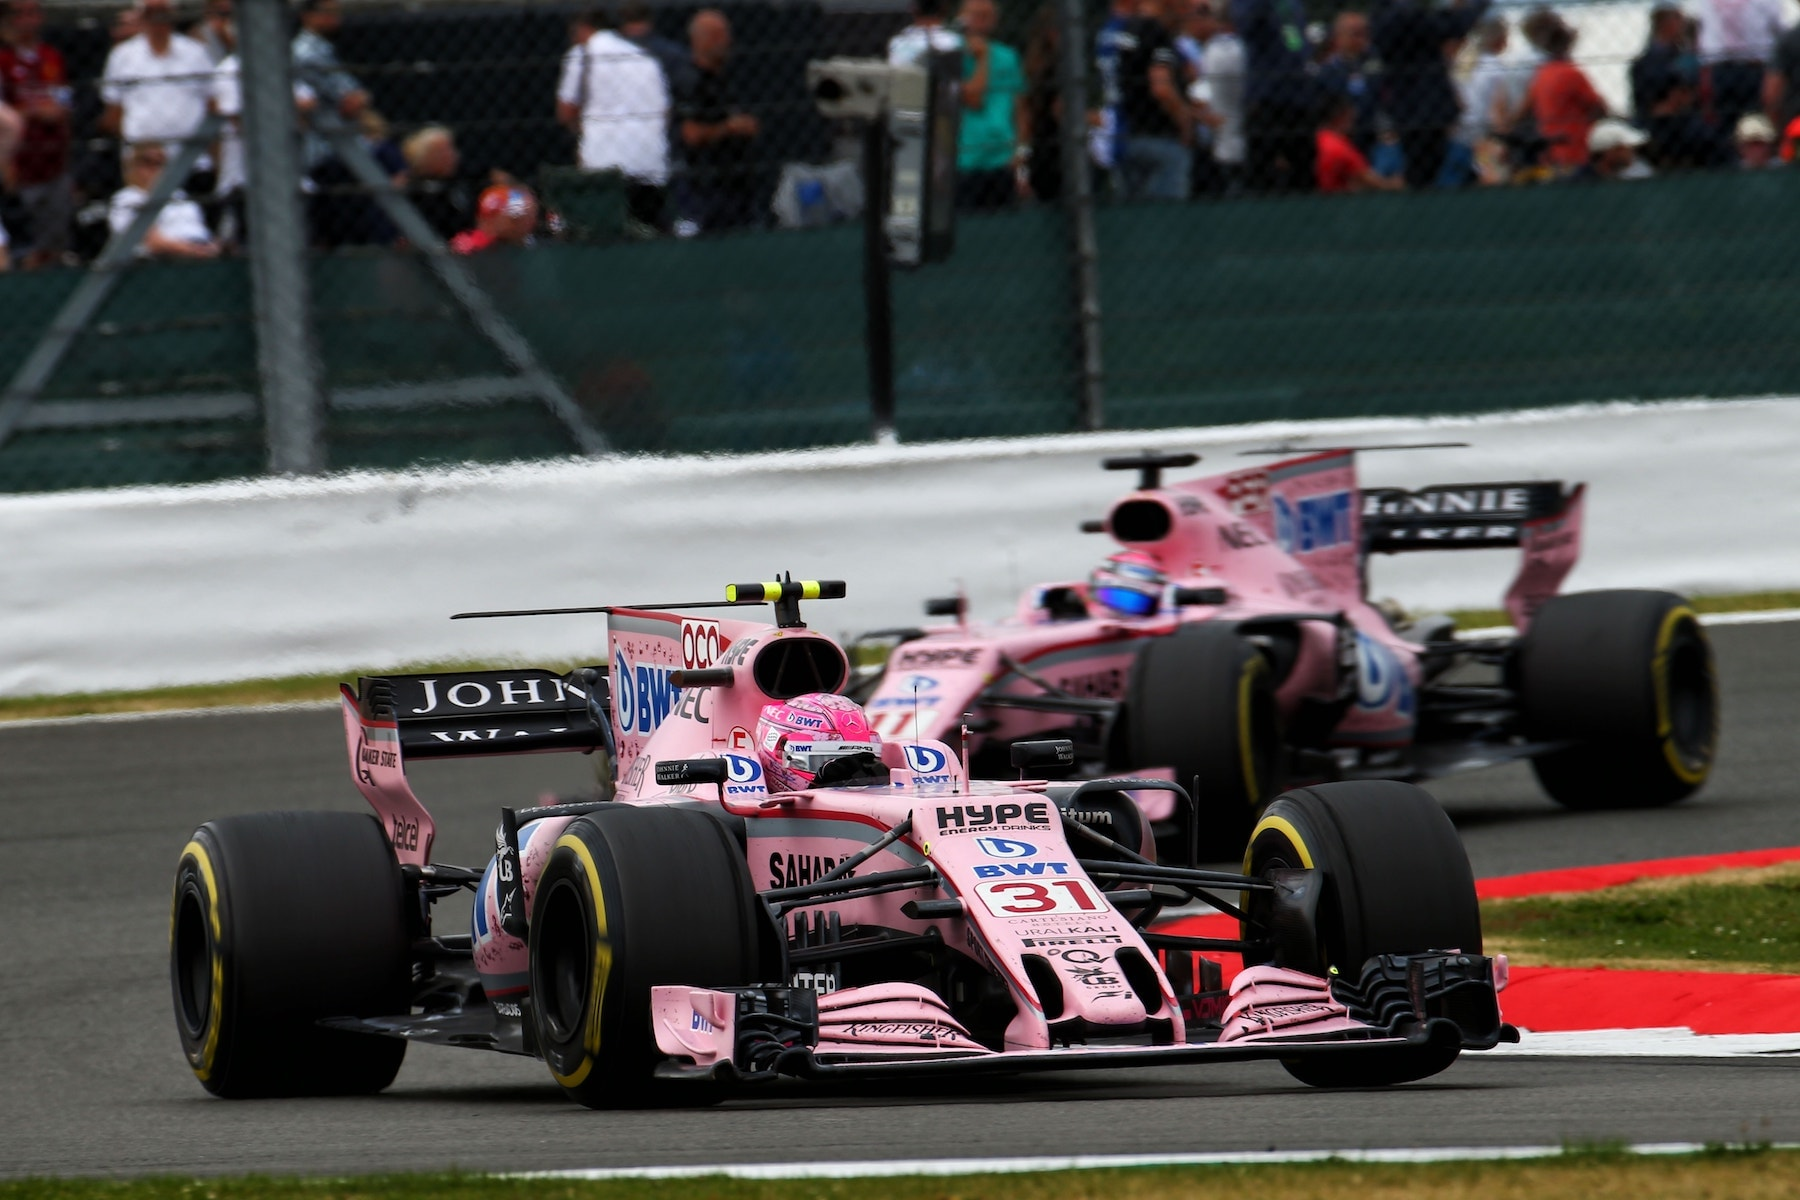 G 2017 Esteban Ocon | Force India VJM10 | 2010 British GP 1 copy.jpg